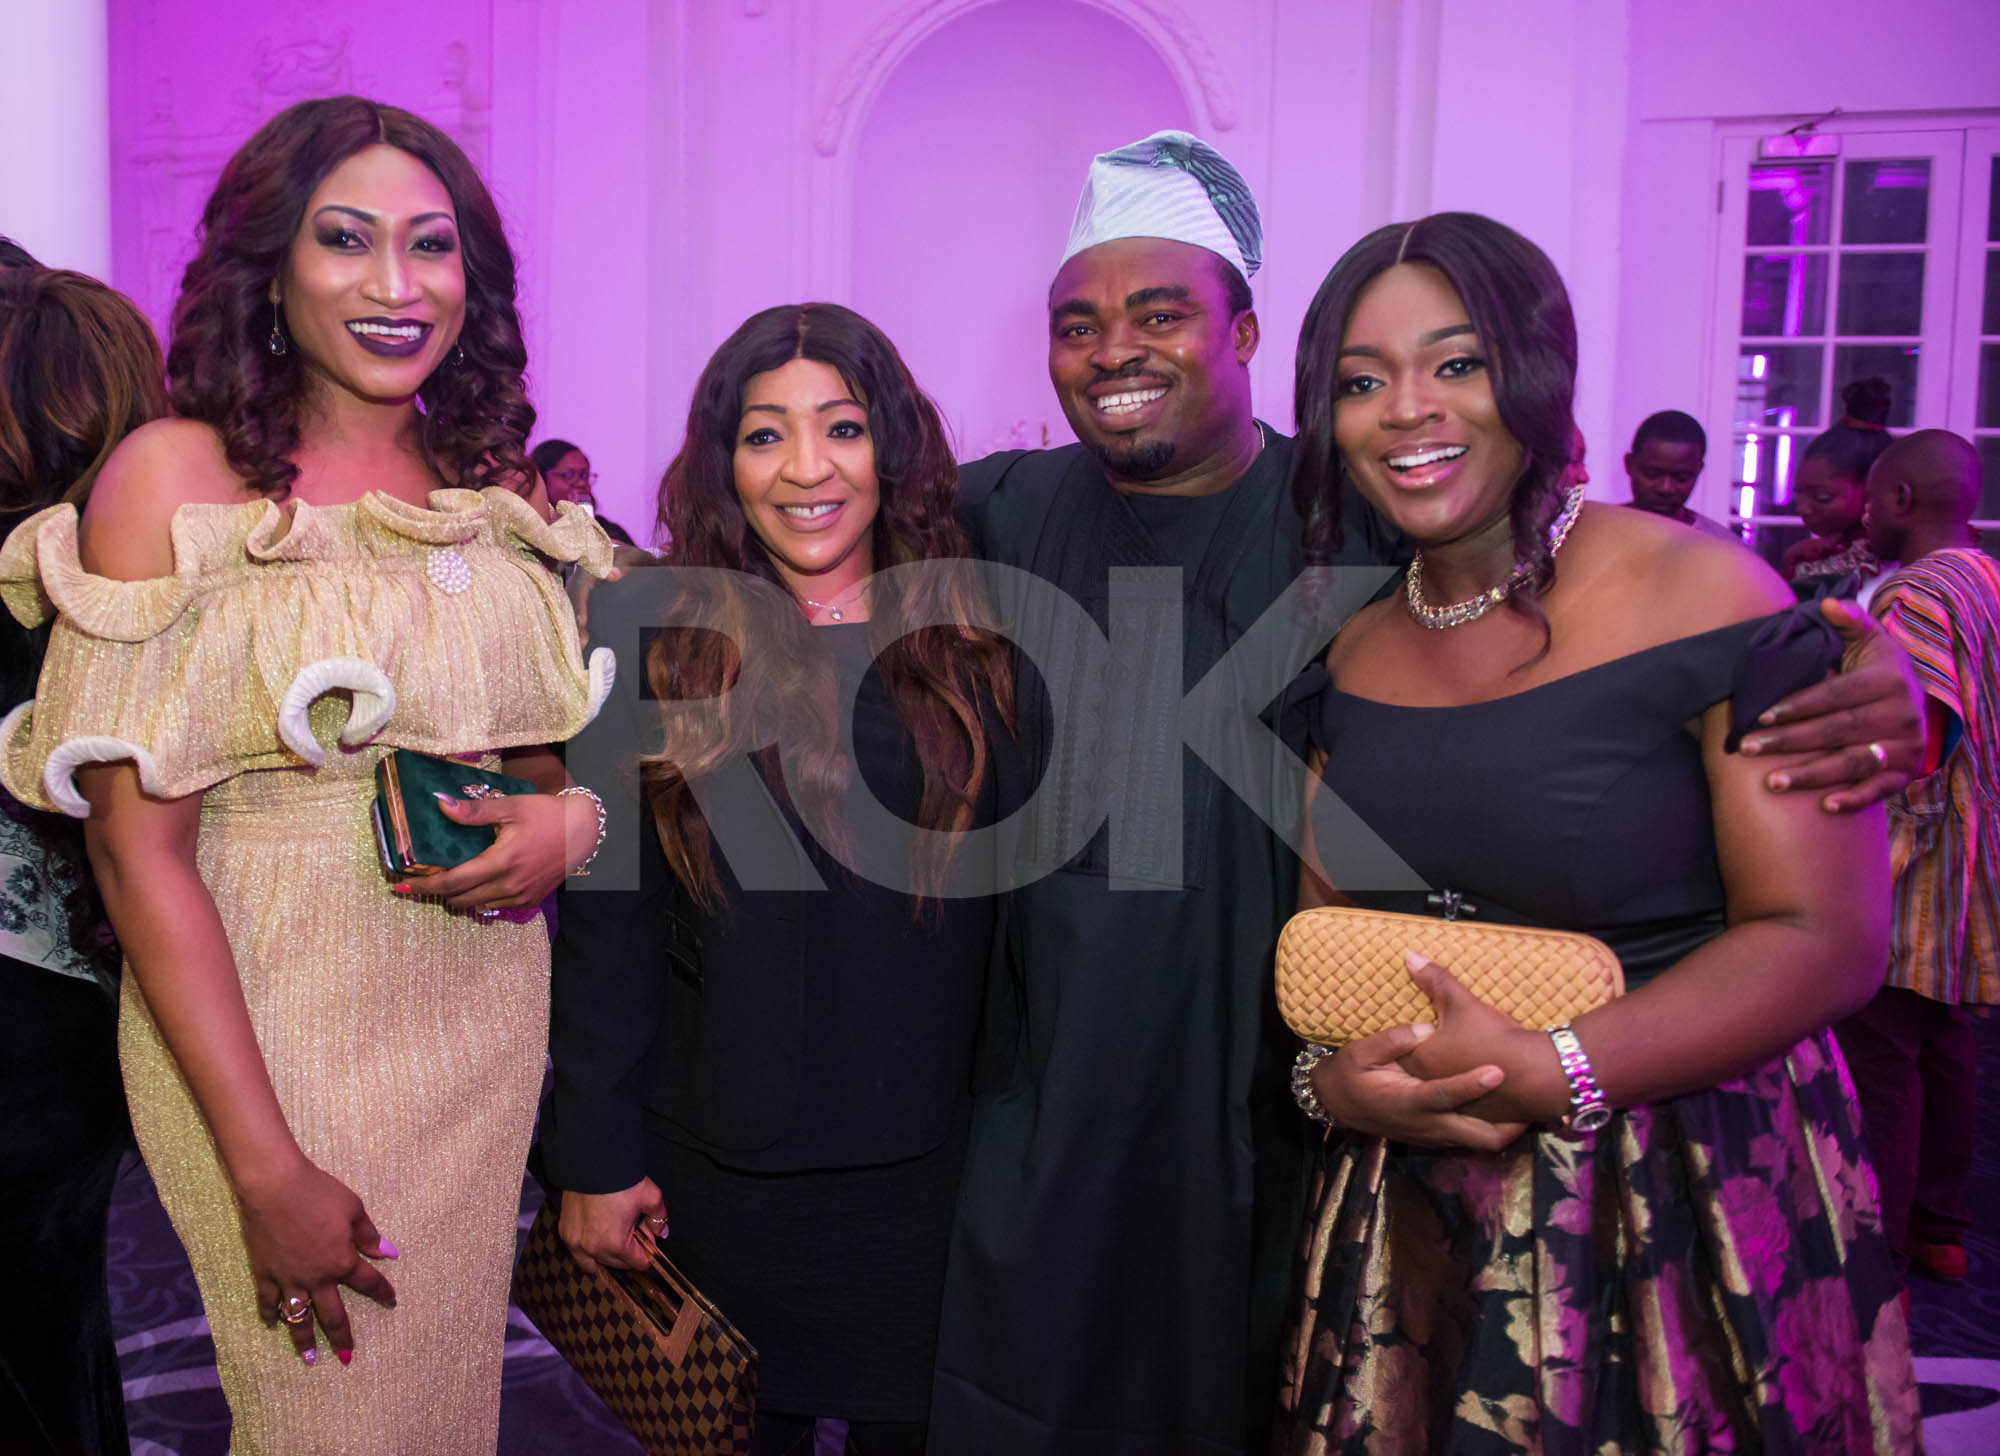 rokonsky-launch-shuts-down-london-with-mary-njoku-nollywood-stars-51